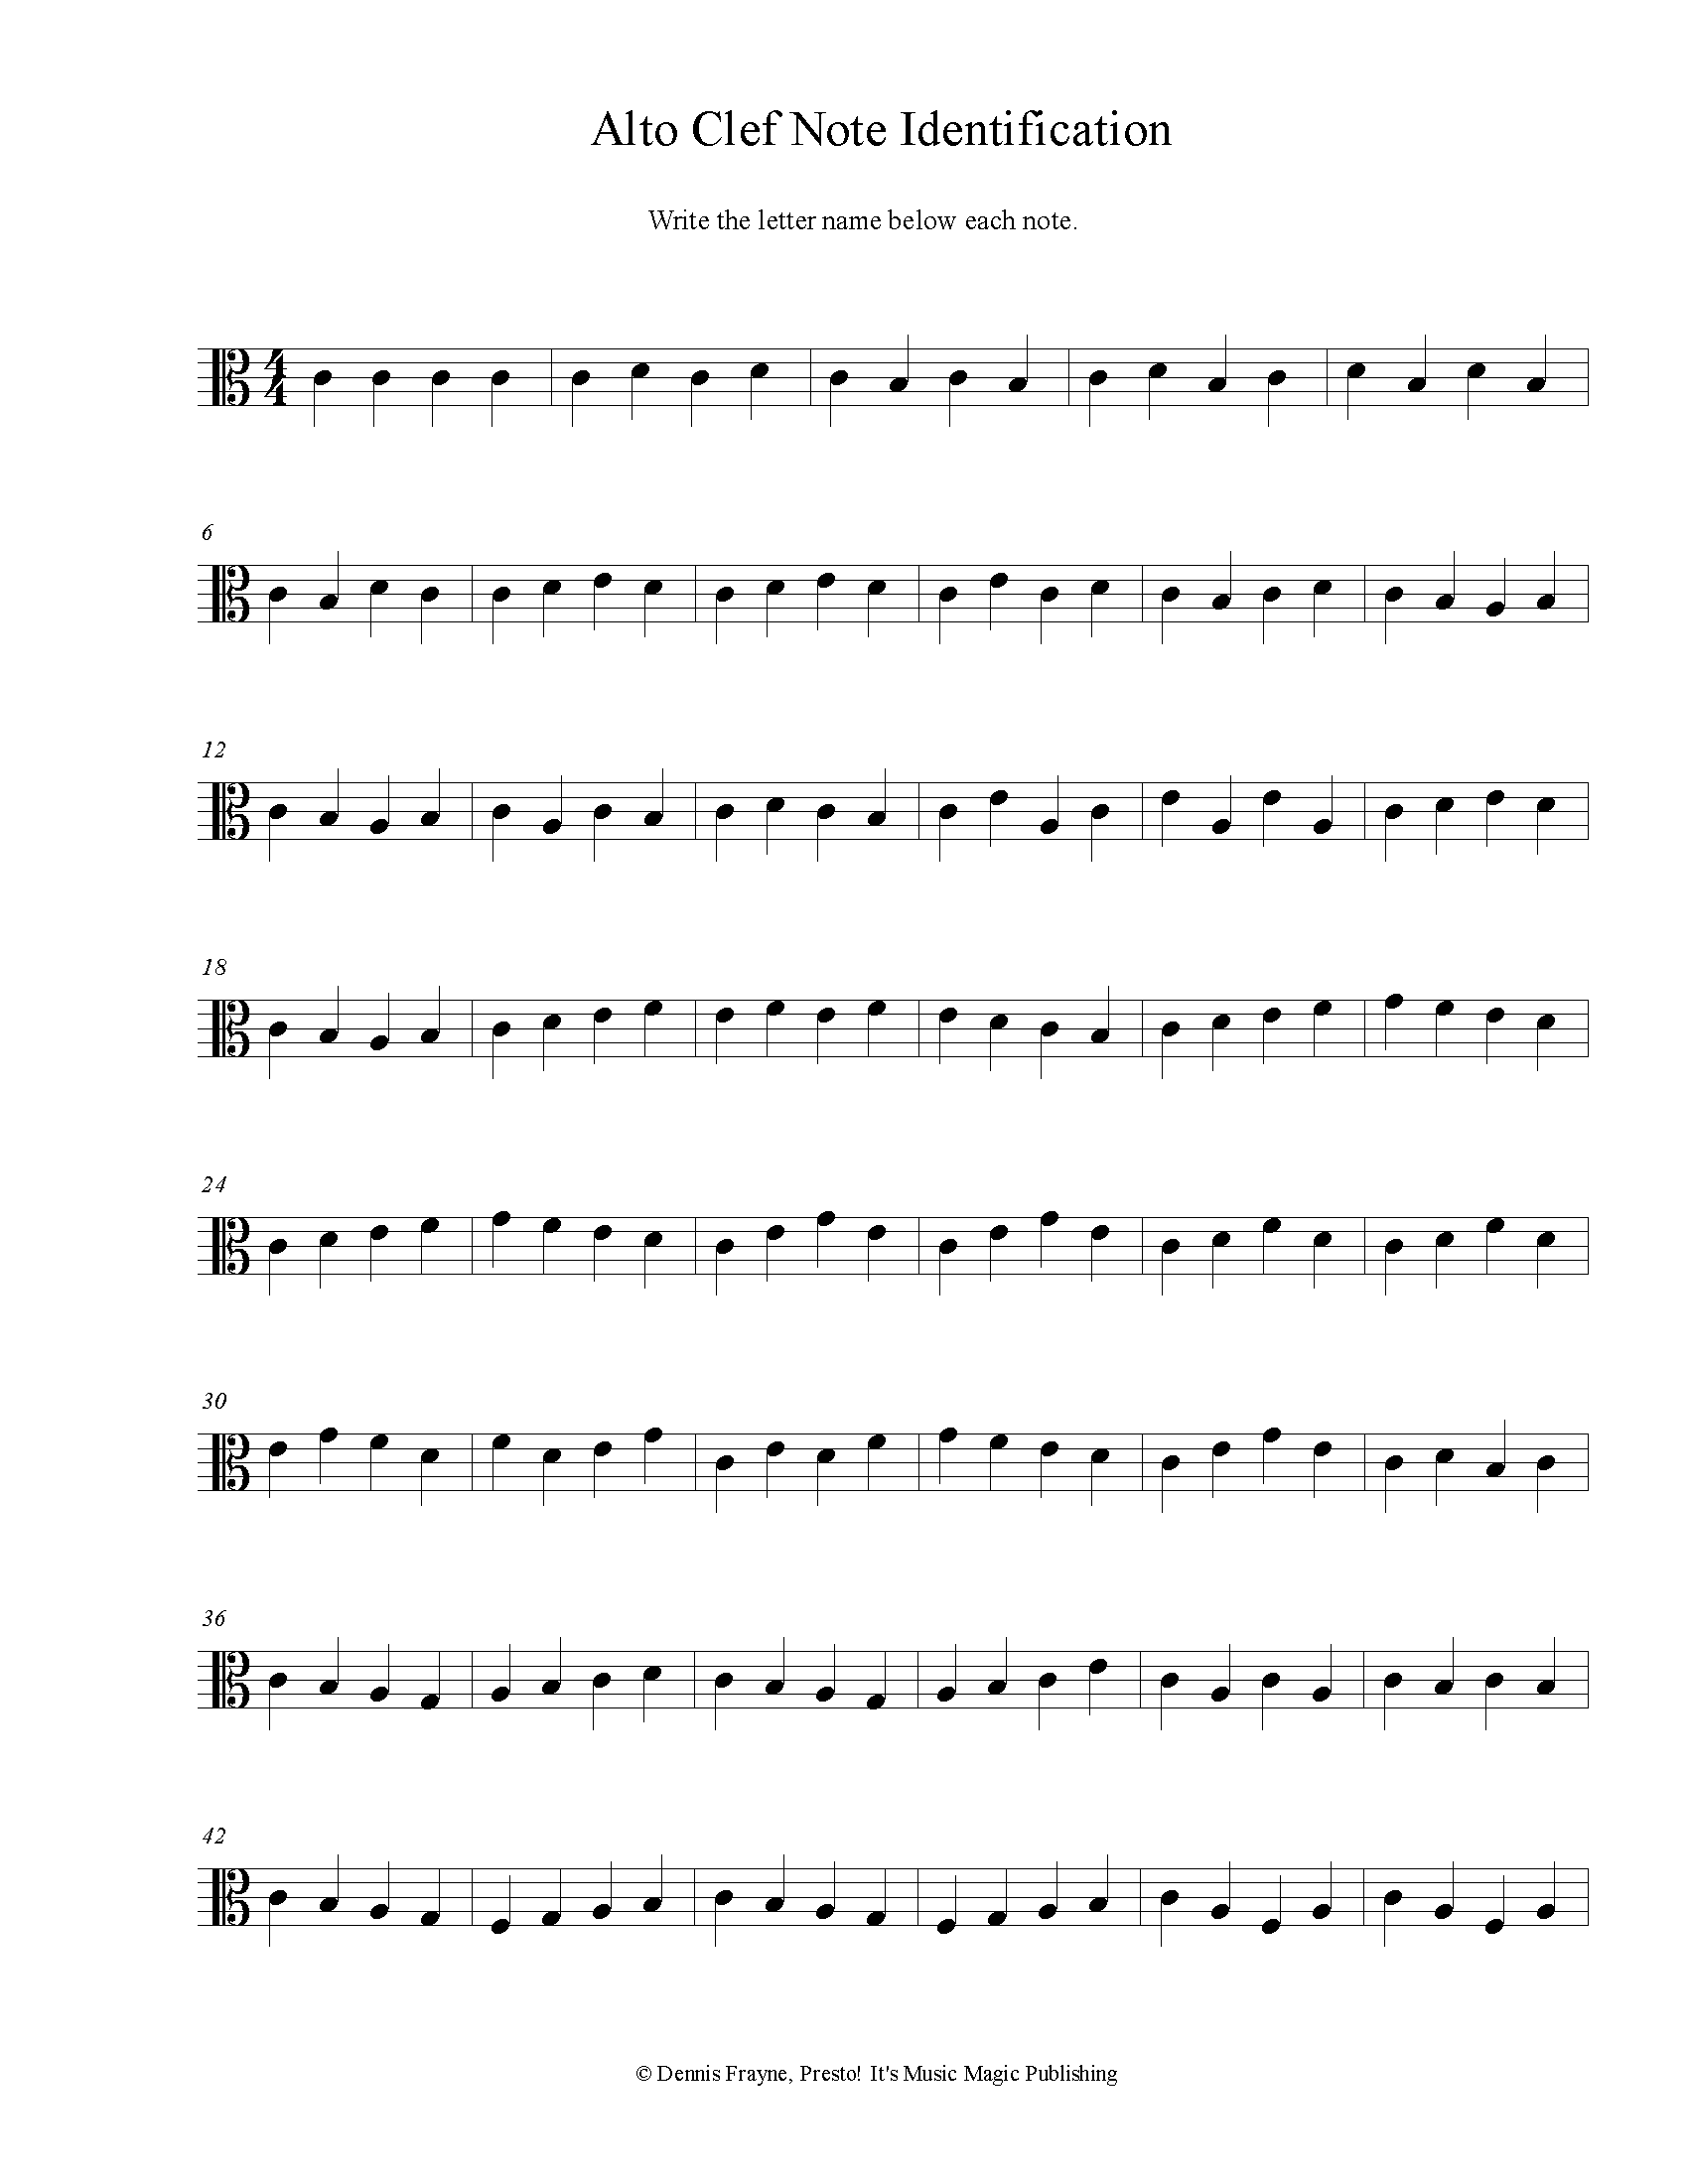 Alto Clef Note Identification Printable Worksheet pdf file 2 pages